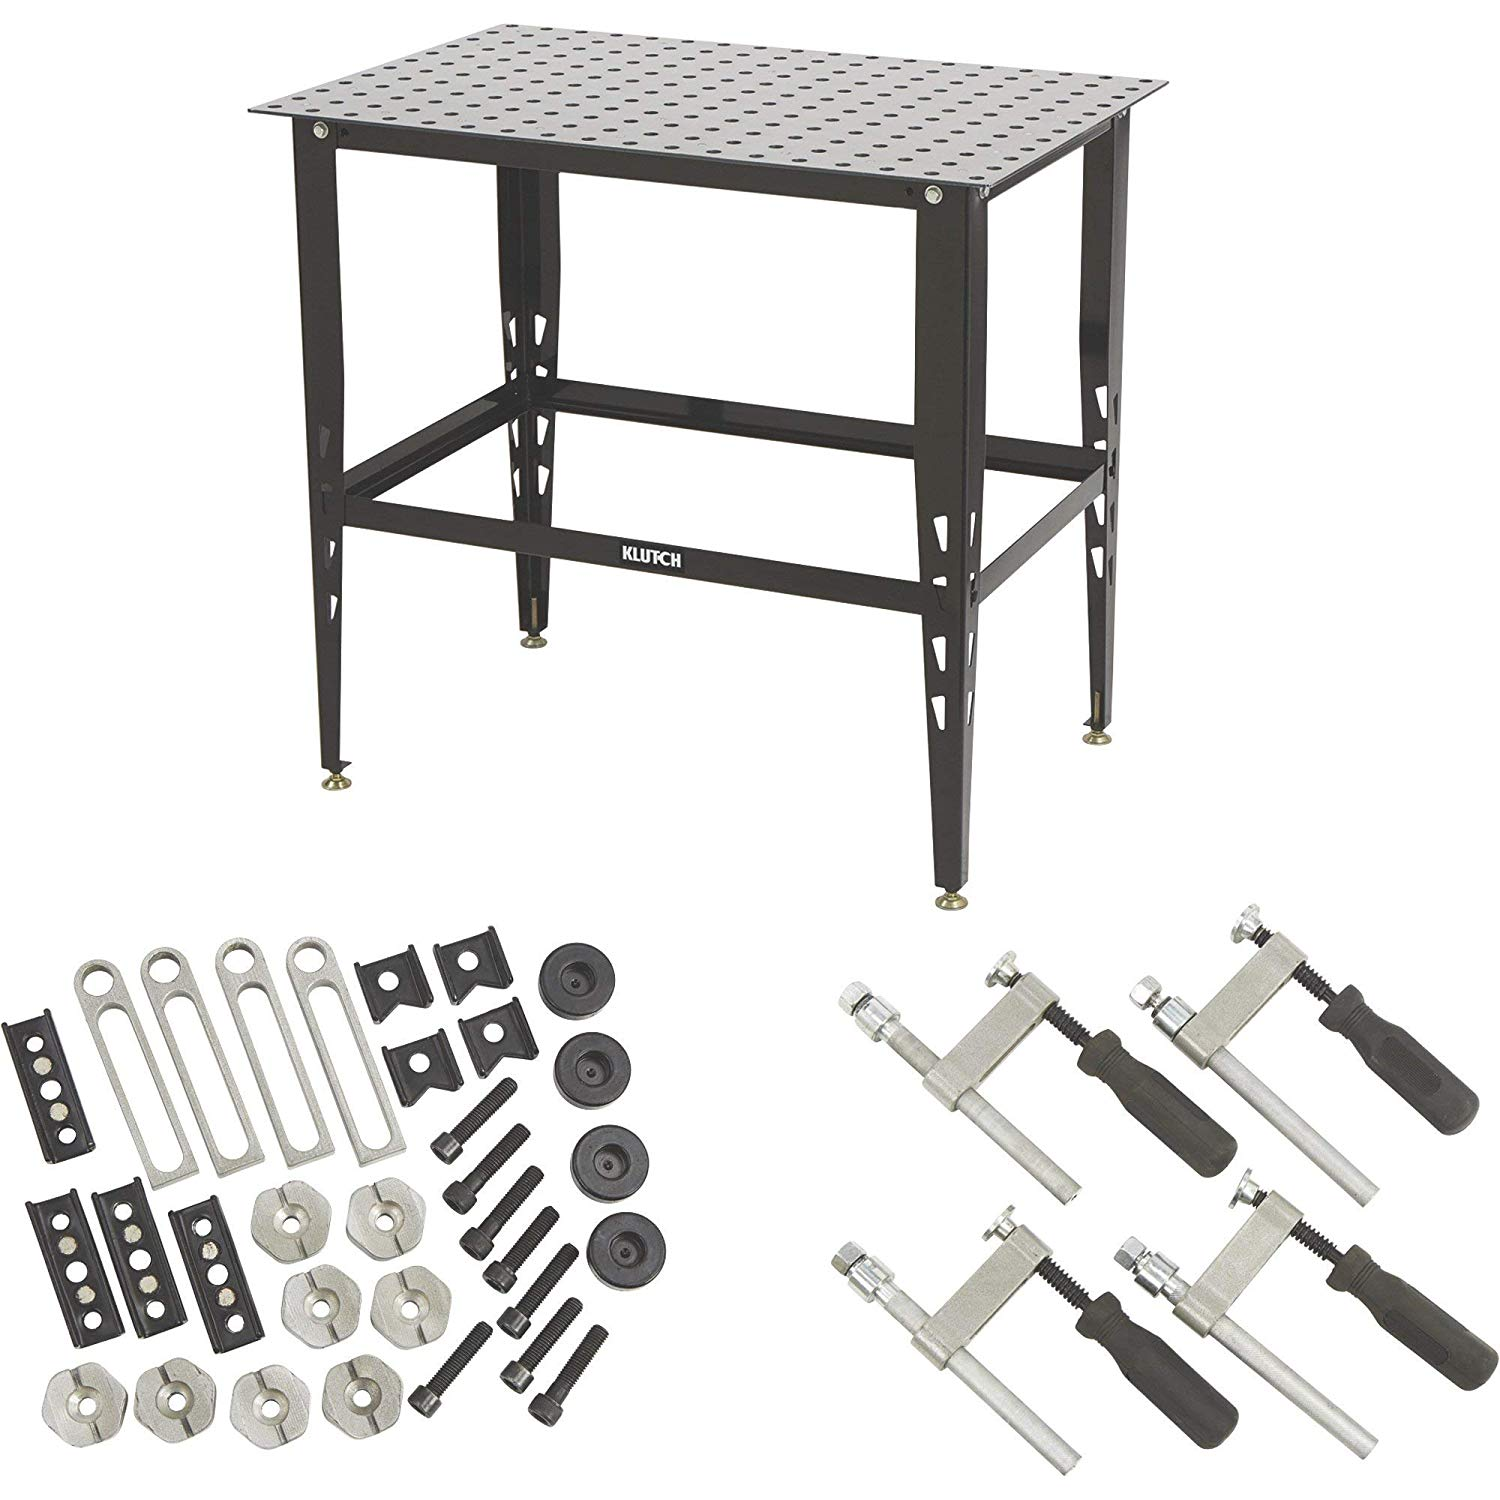 Klutch Steel Welding Table with Tool Kit - 36in.L x 24in.W x 33 1/4in.H: